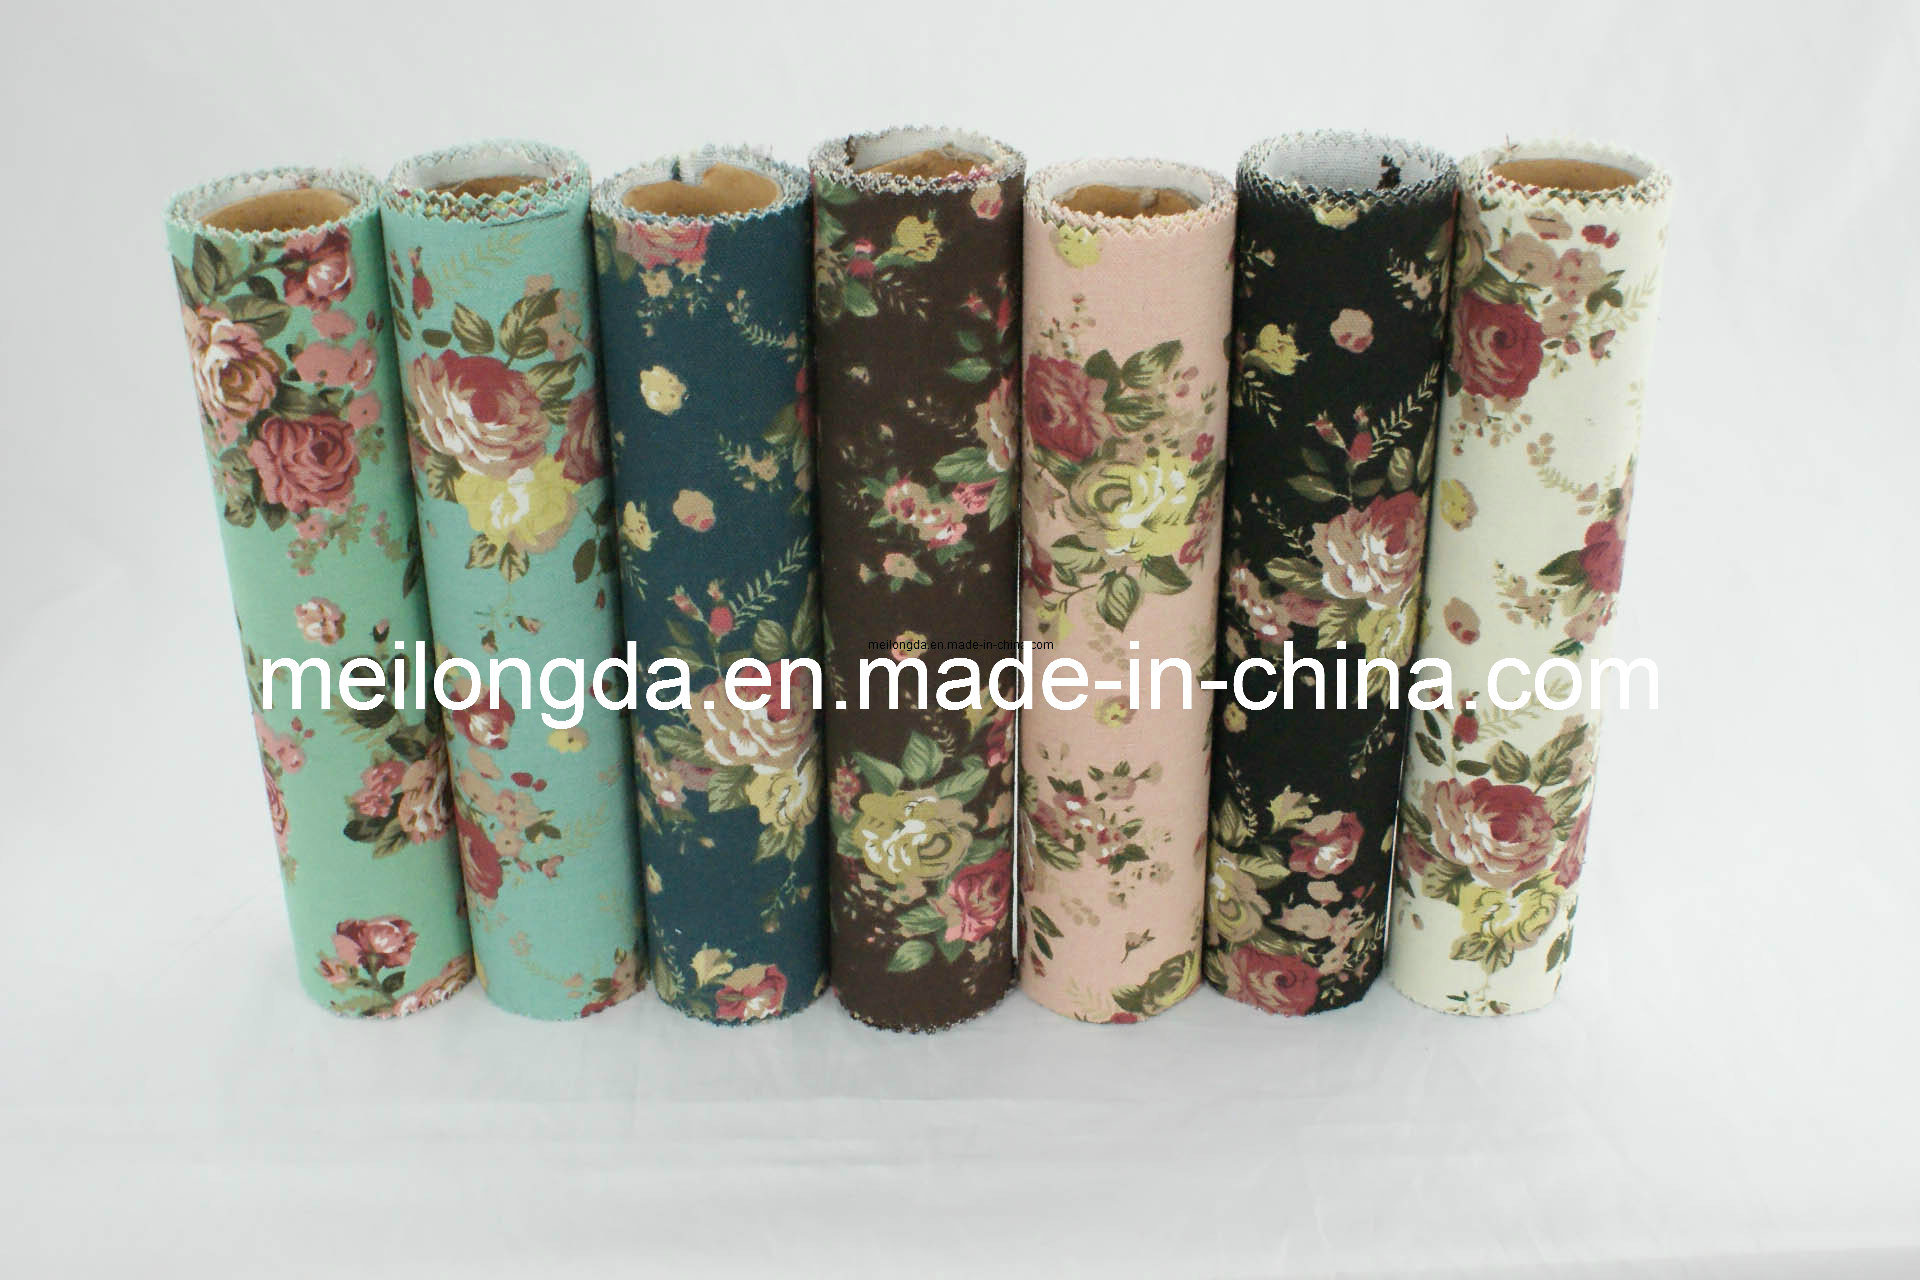 European Printed Canvas Fabric with Flower Pattern (YH359)